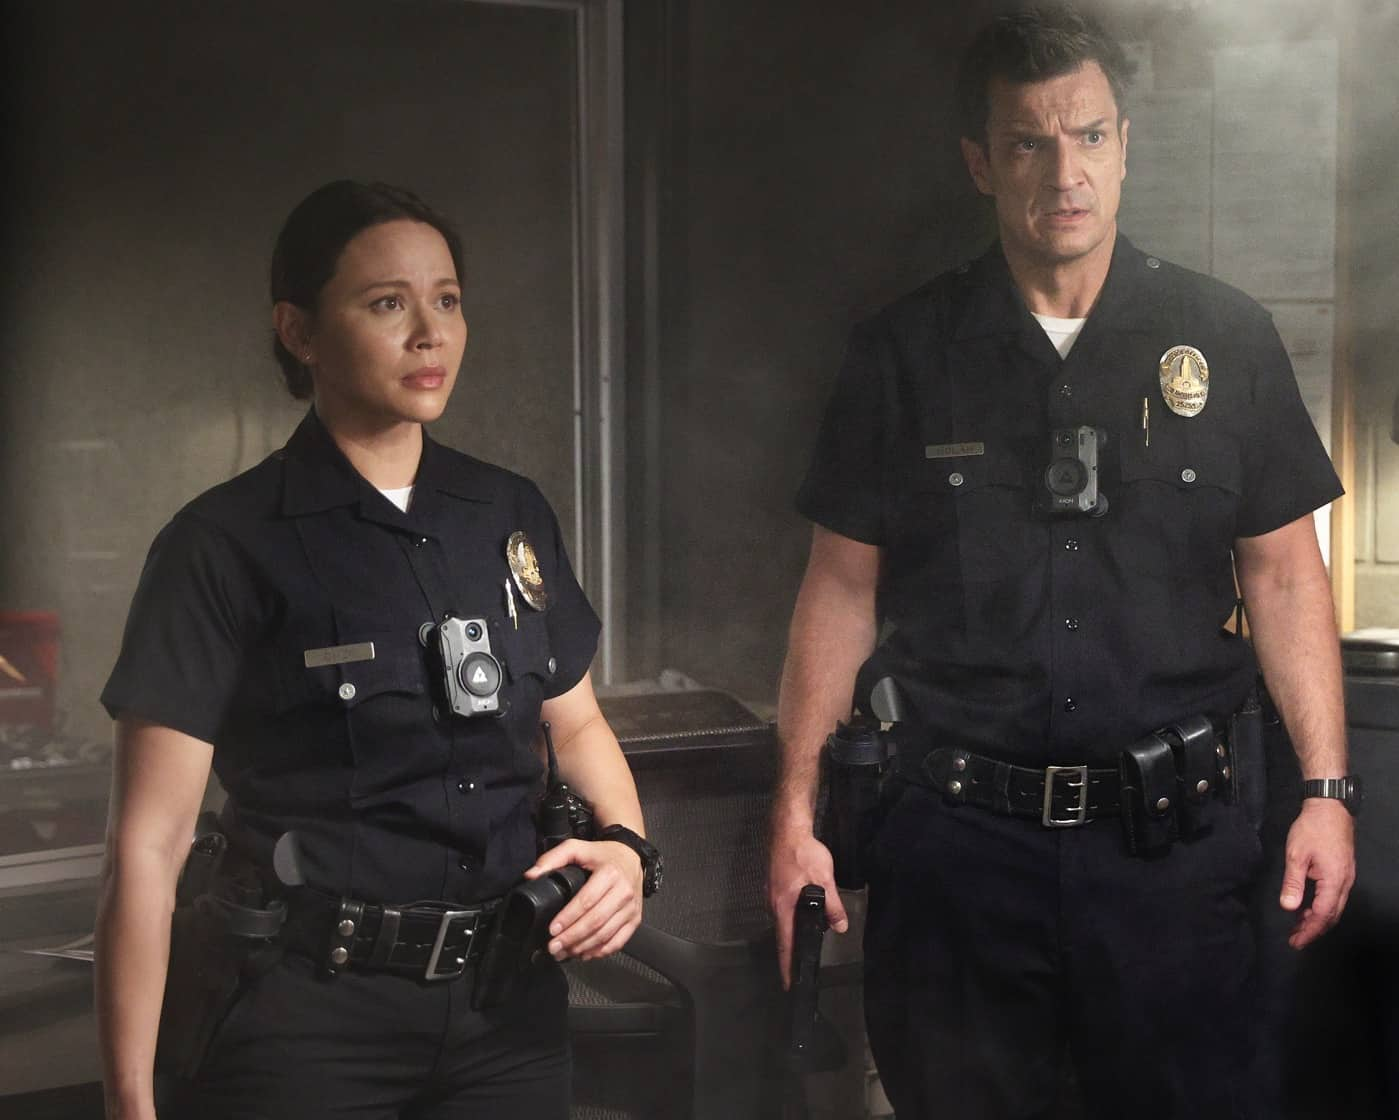 THE ROOKIE Season 4 Episode 4 Photos Red Hot